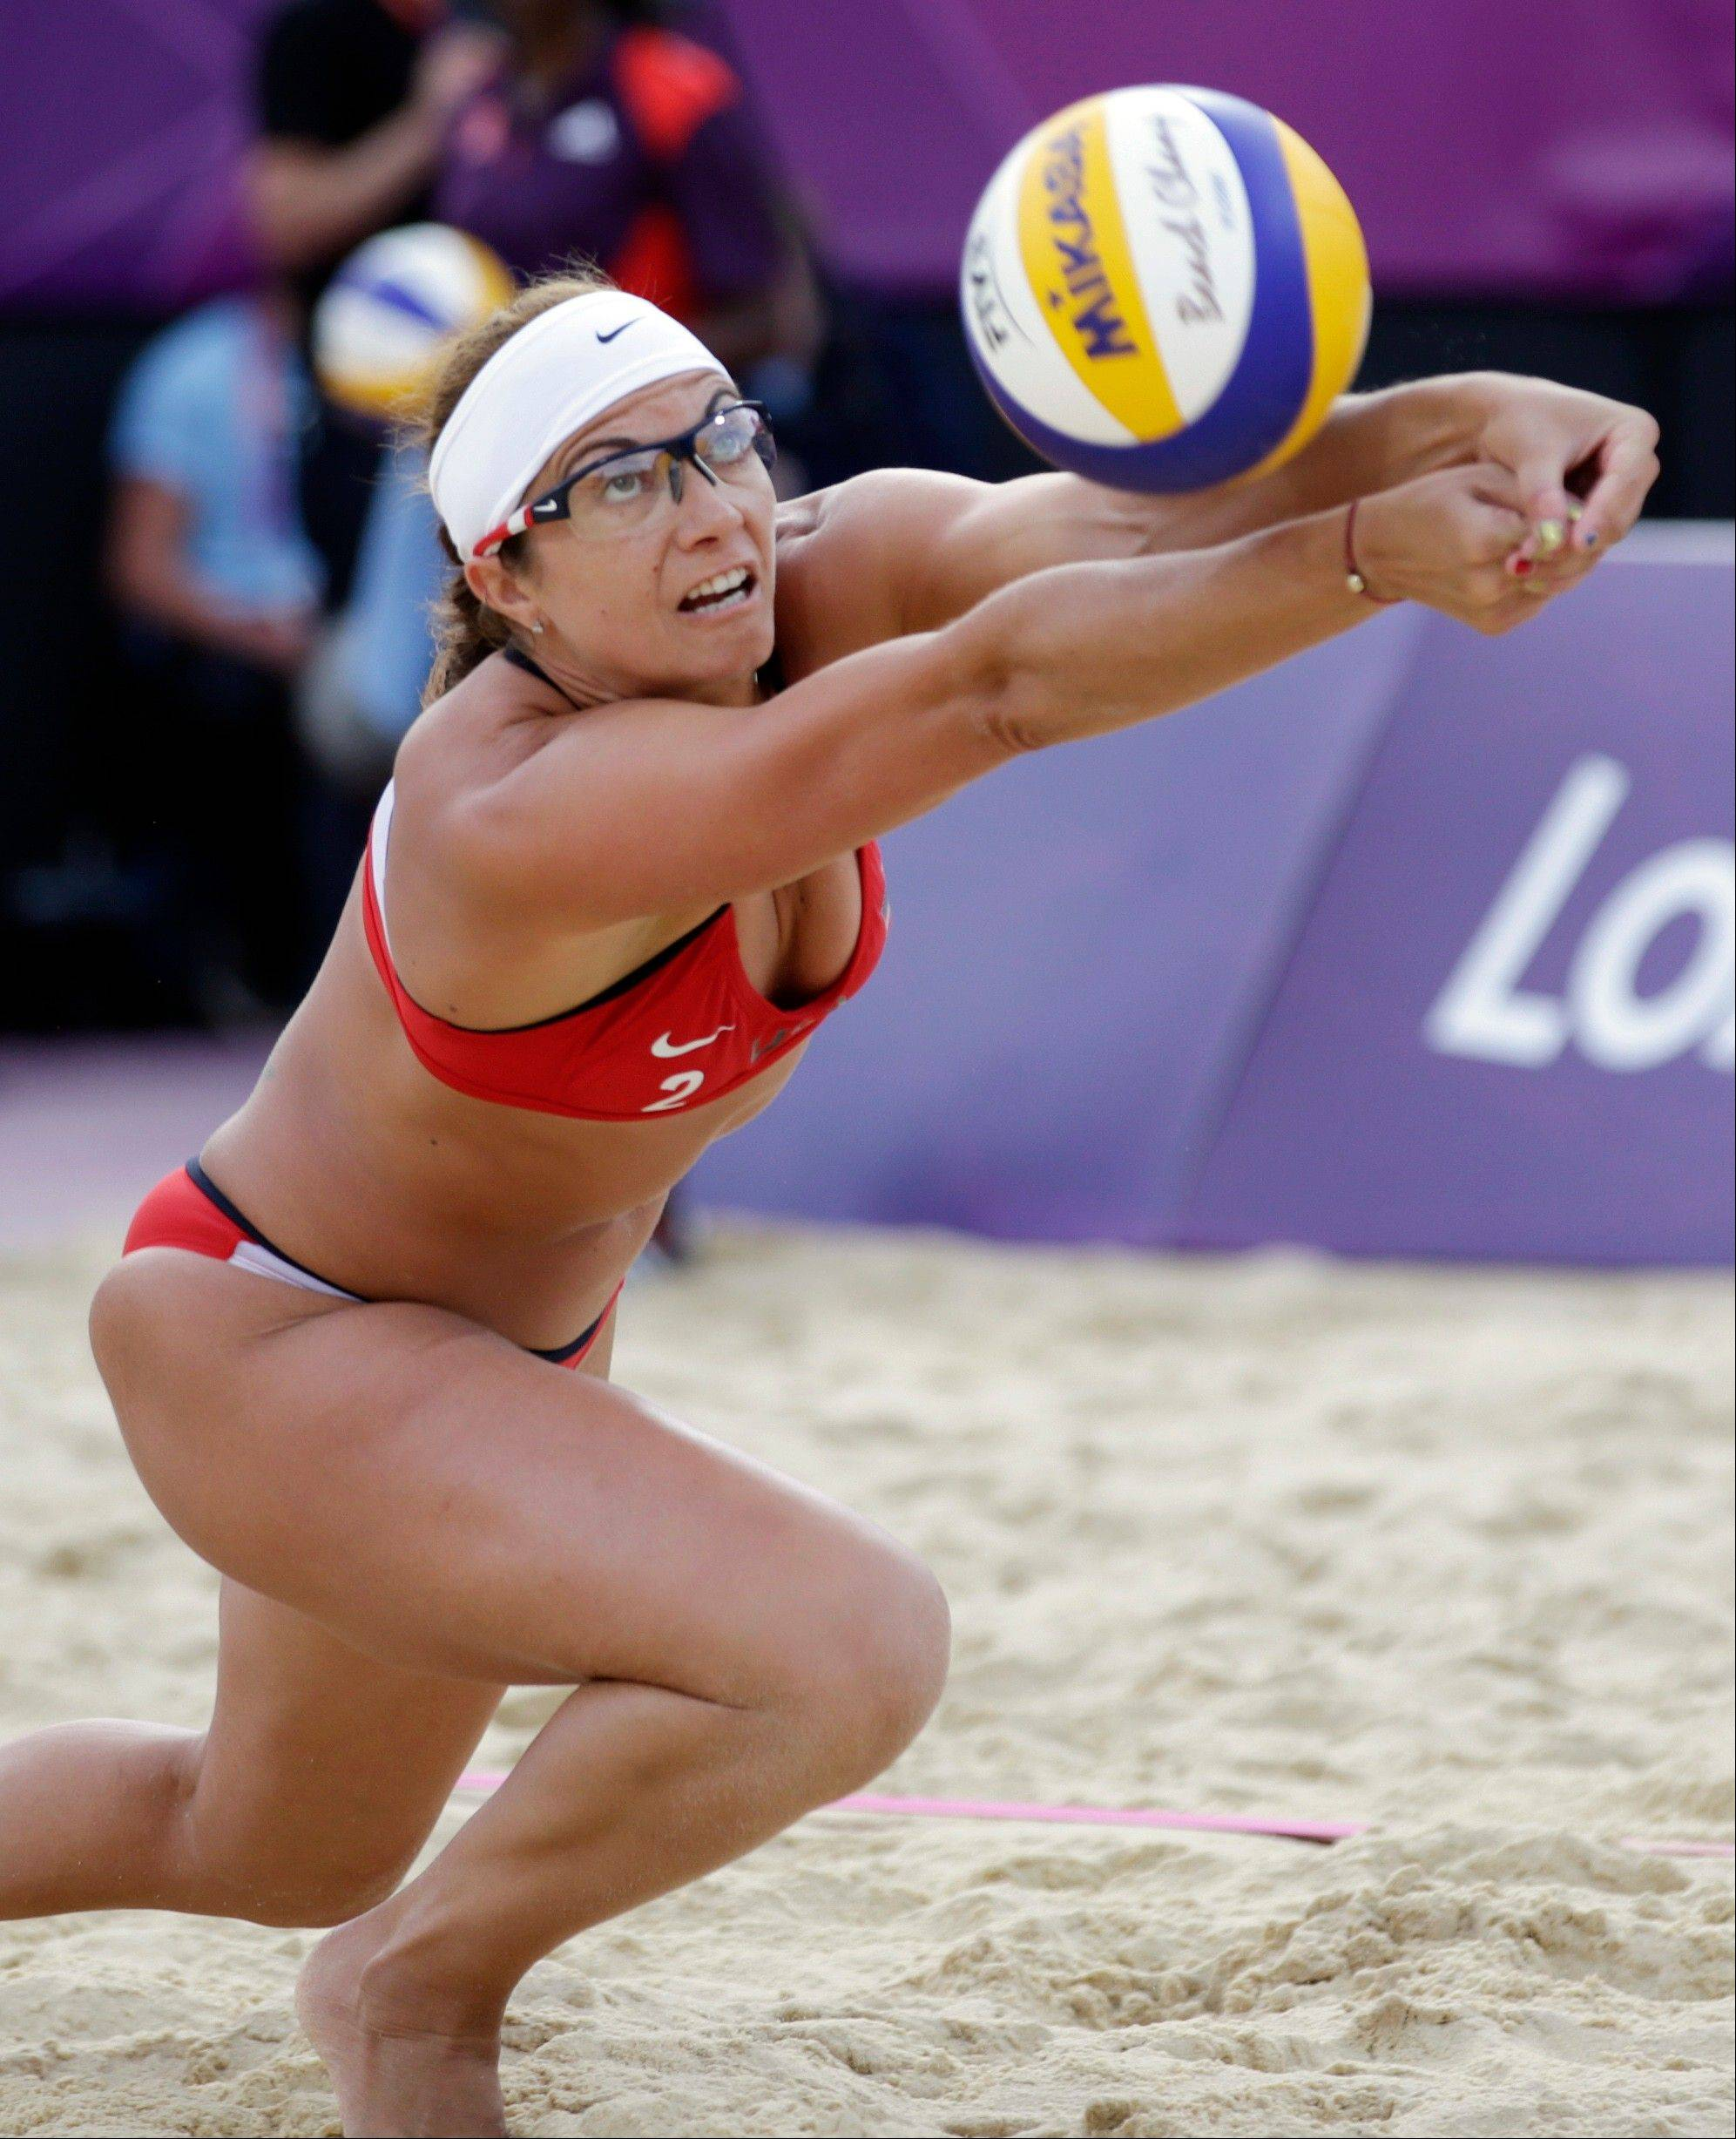 Misty May Treanor of the United States returns a ball during a beach volleyball match against Italy at the 2012 Summer Olympics, Sunday, Aug. 5, 2012, in London.